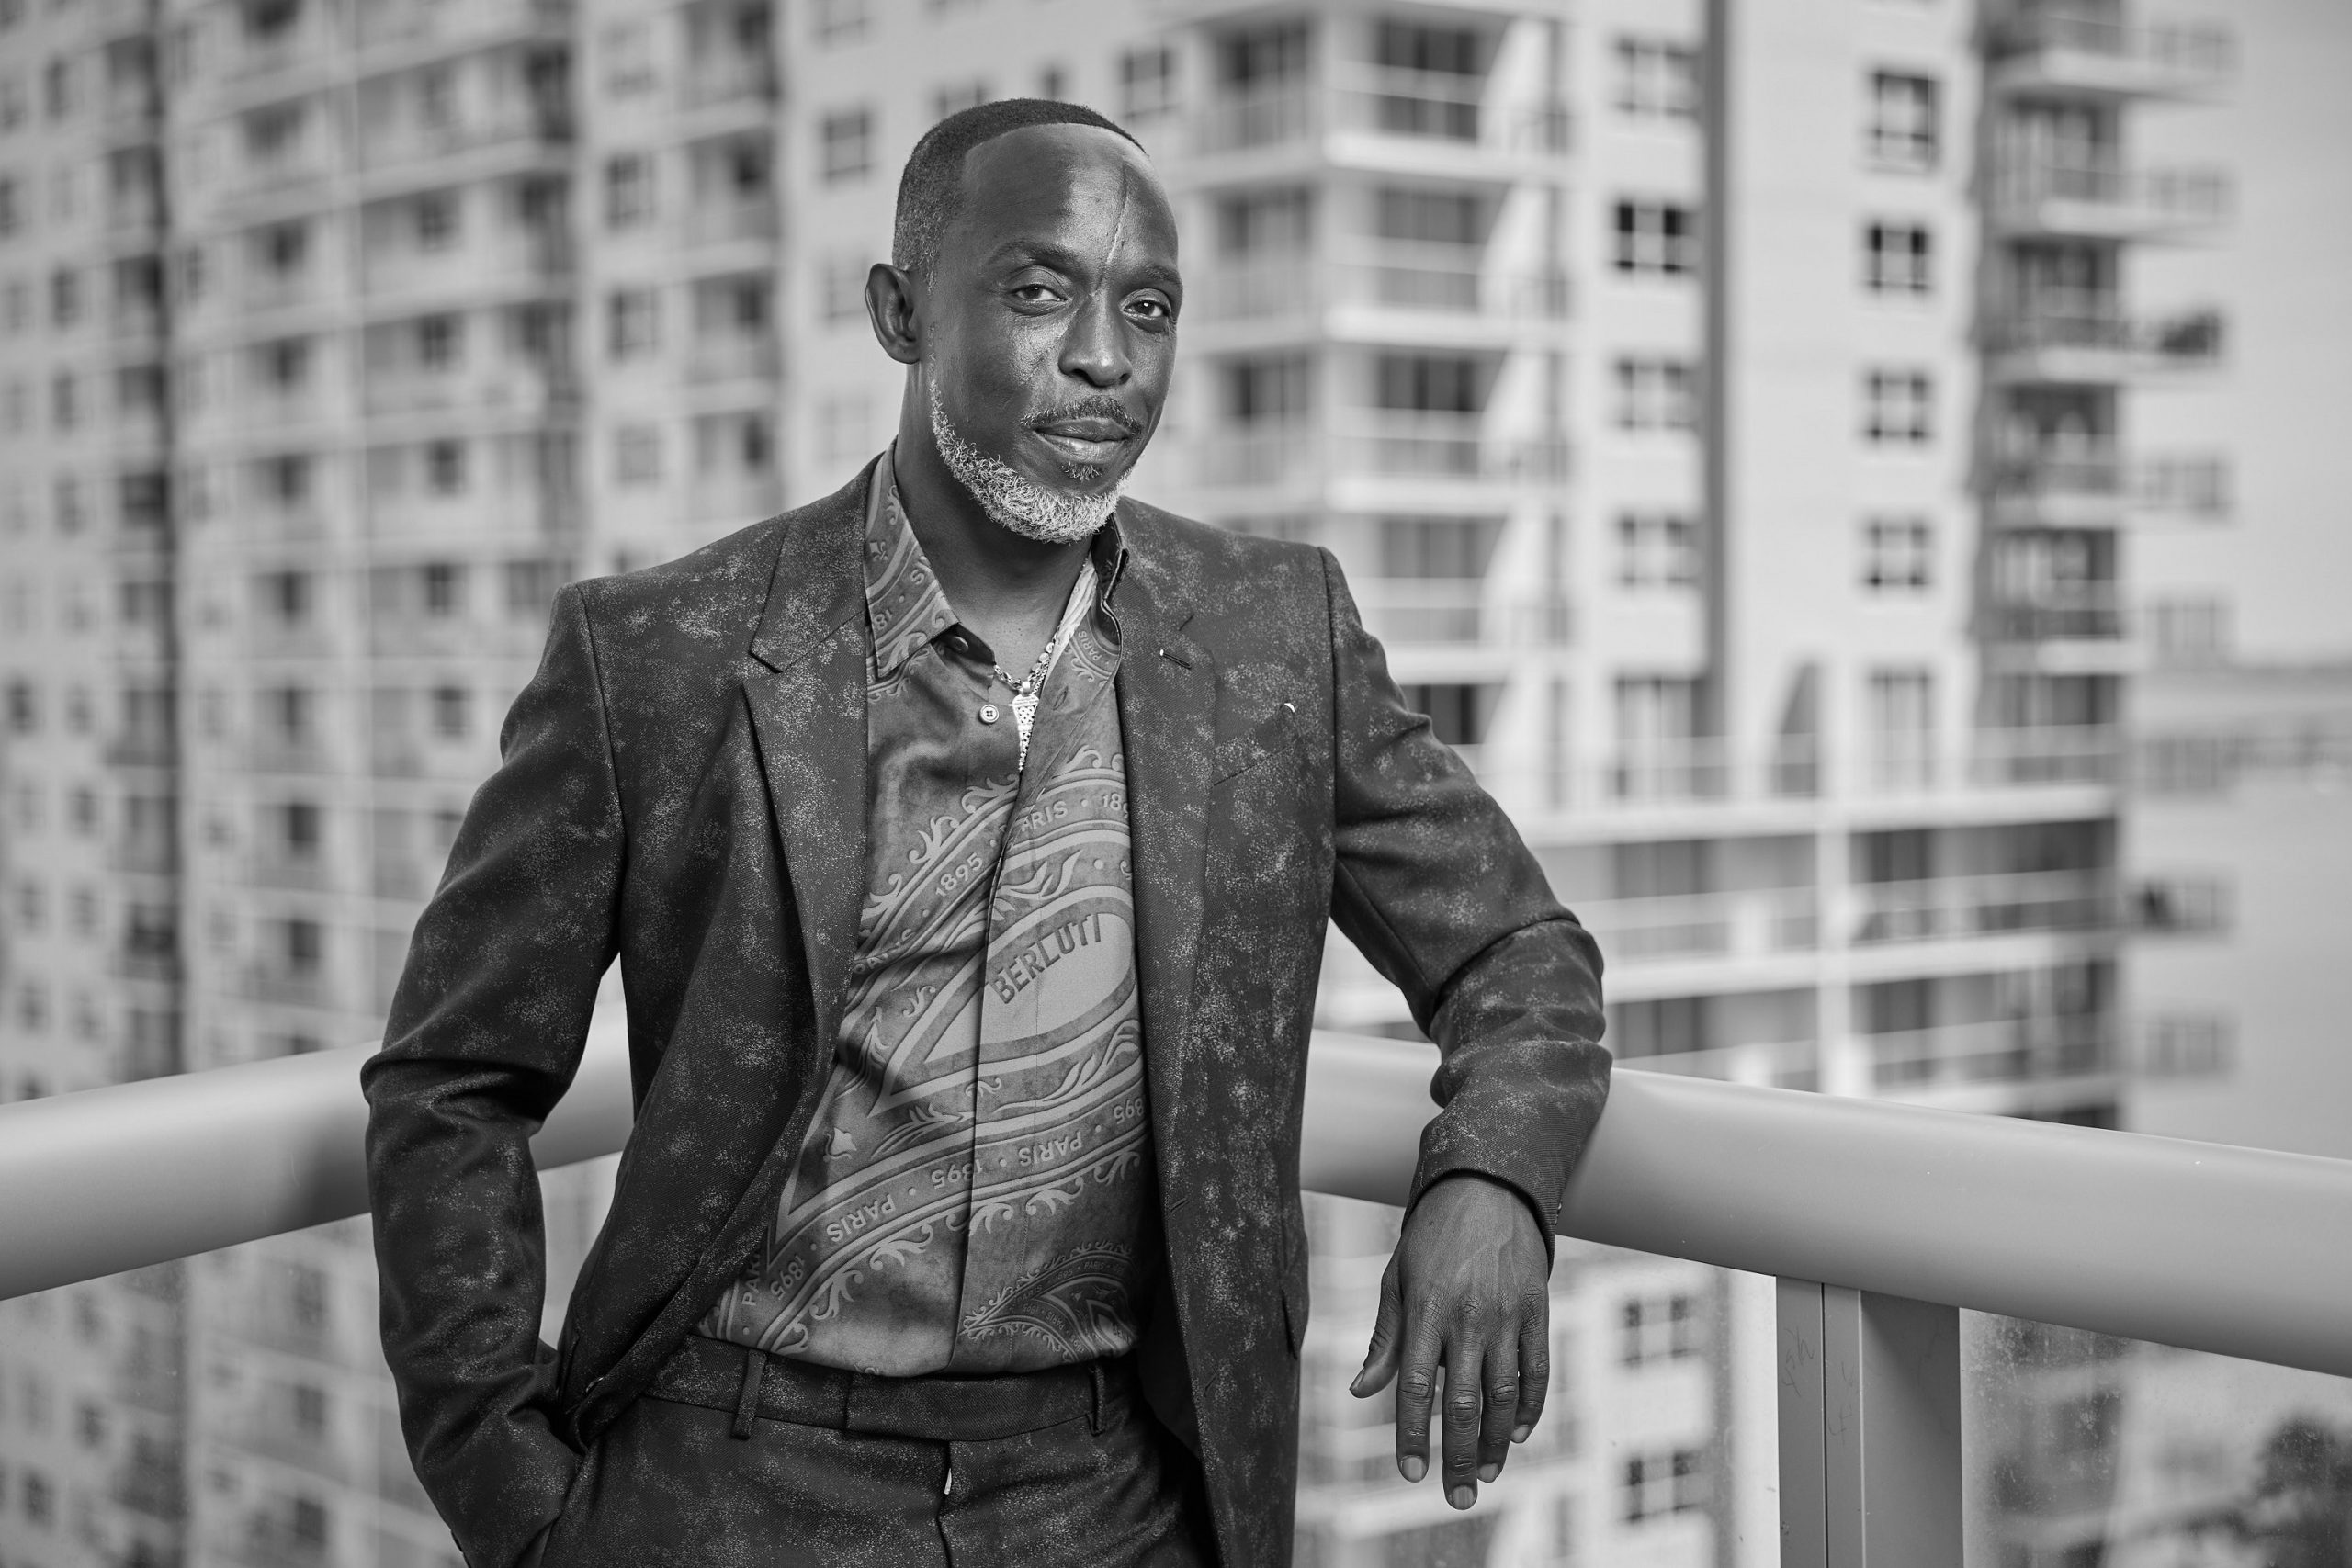 'The Wire' actor Michael K. Williams found dead in apartment